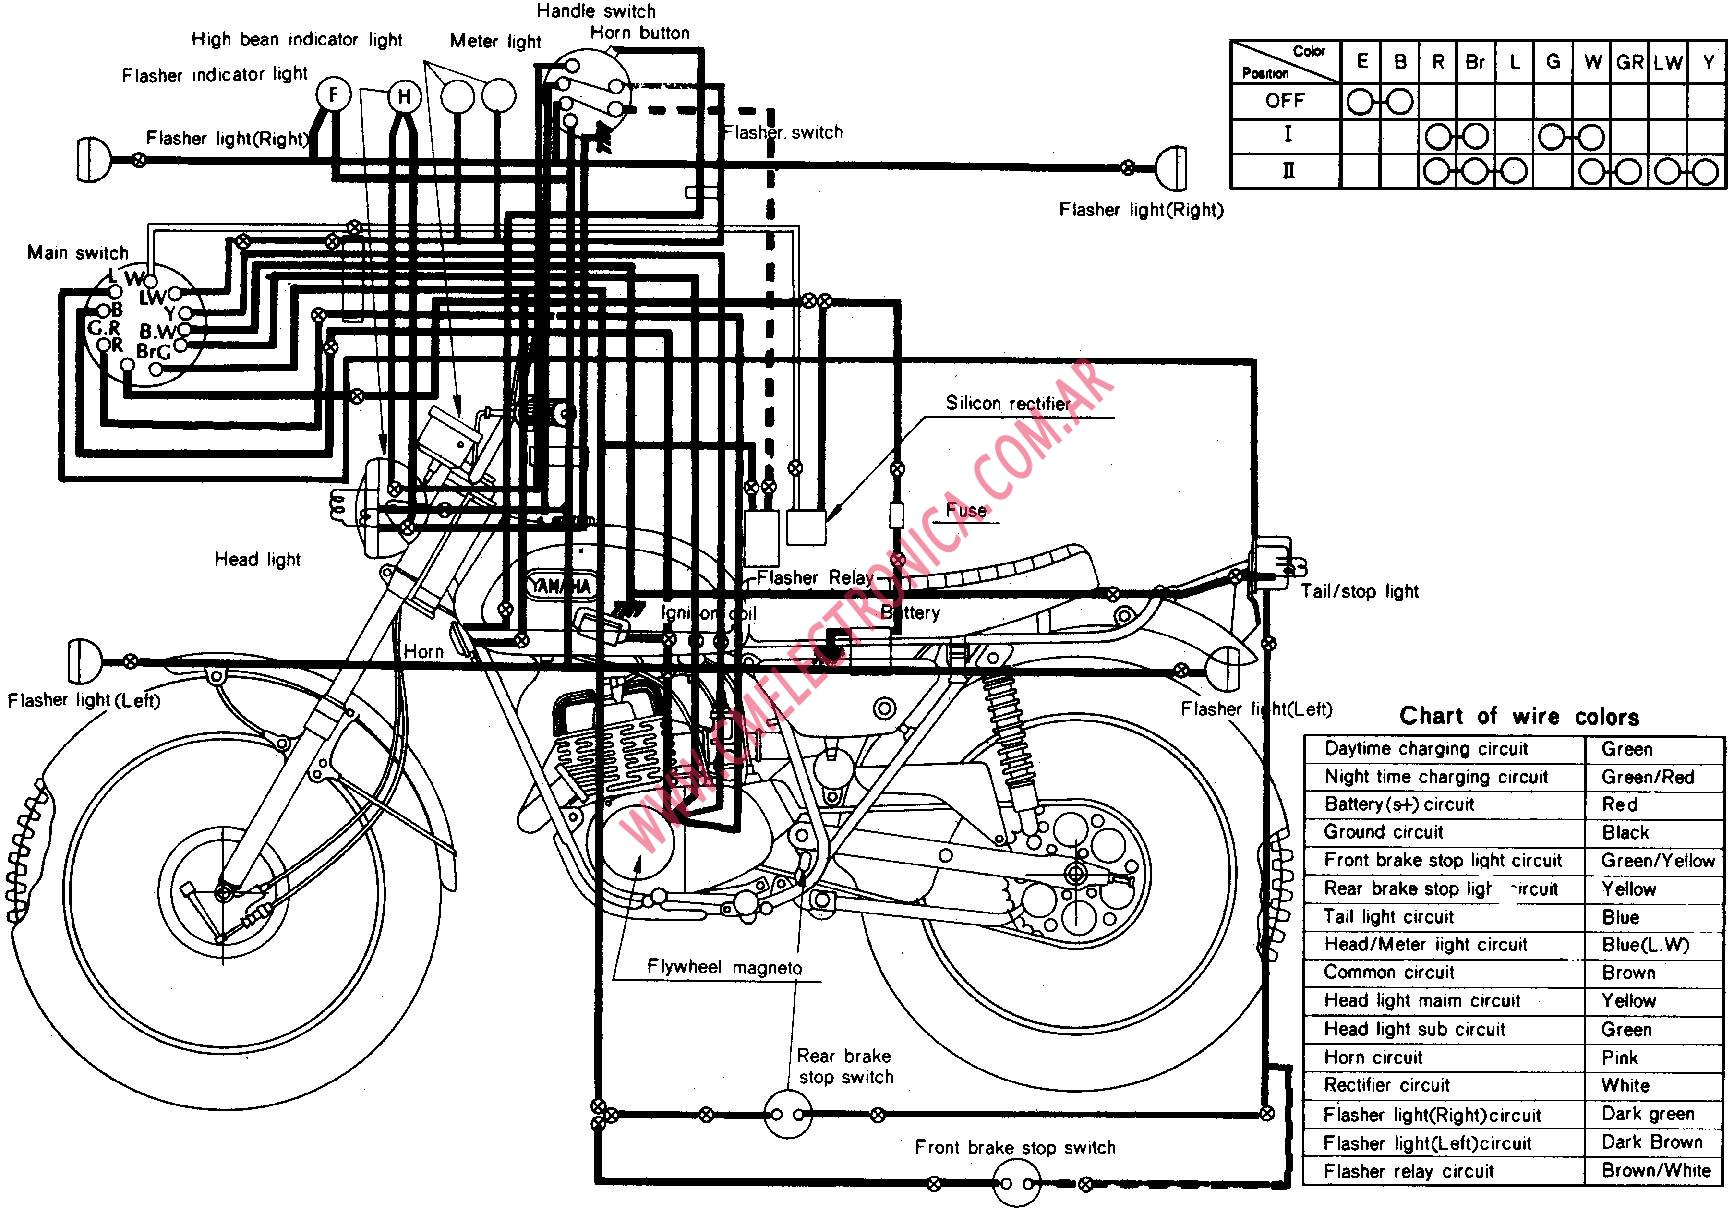 hight resolution of dt250a wiring diagram get free image about wiring diagram 1978 yamaha yz80 1975 yamaha dt 100